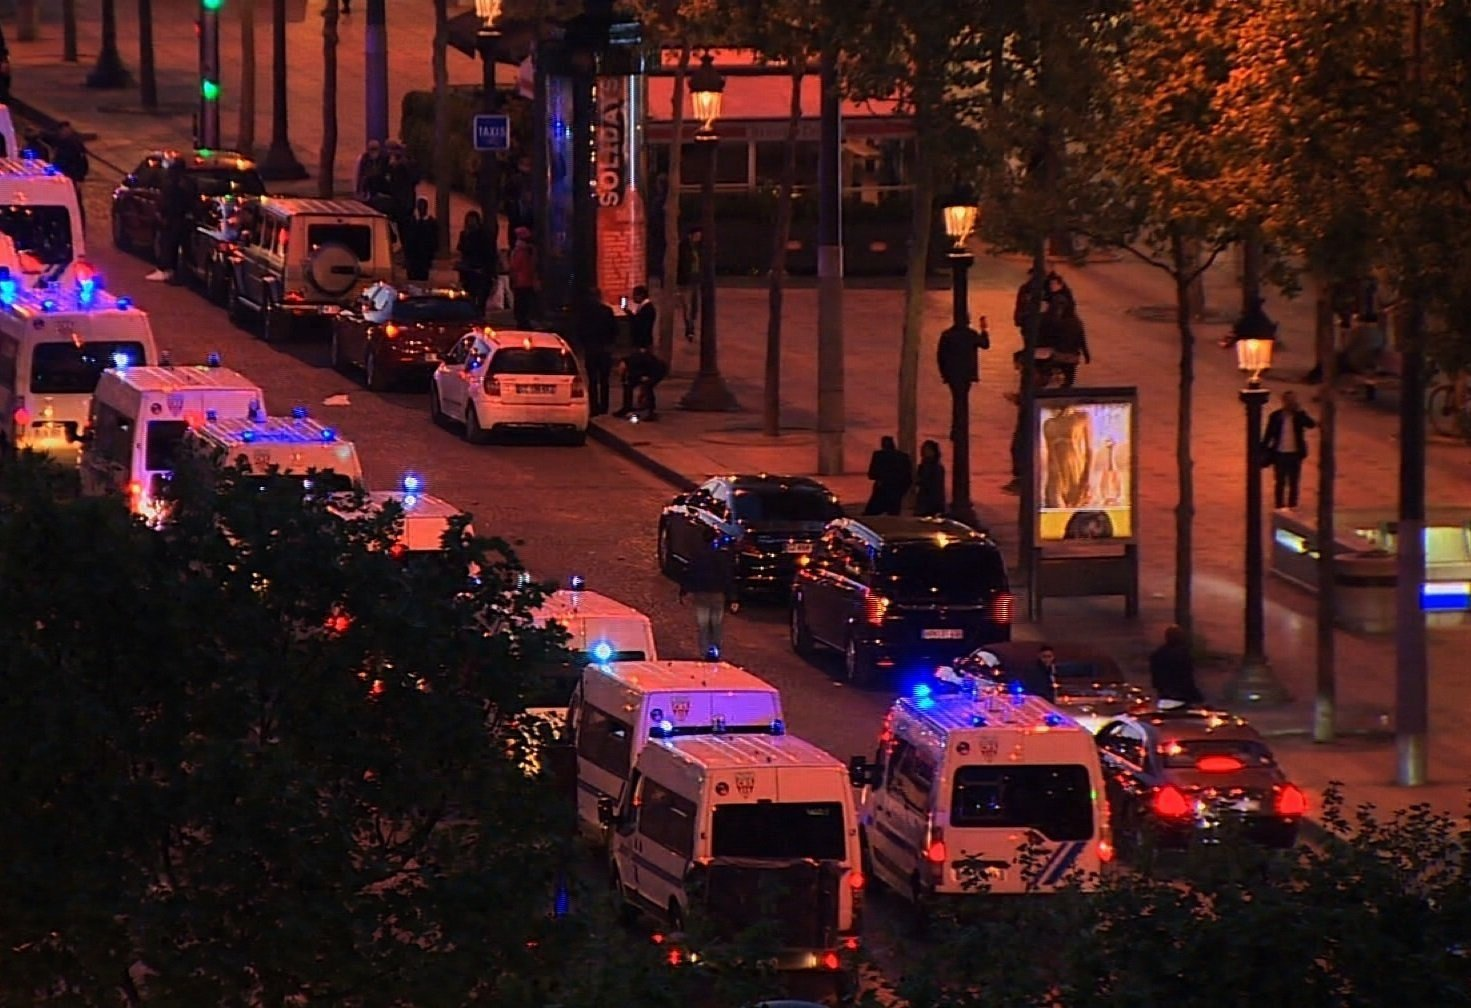 On April 20, 2017, a deadly shooting on a police bus in the Champs-Elyssees, Paris, left one officer dead and several injured. The Champs Elysees has been closed. Authorities are telling people to avoid the area. Multiple security vehicles are on the...